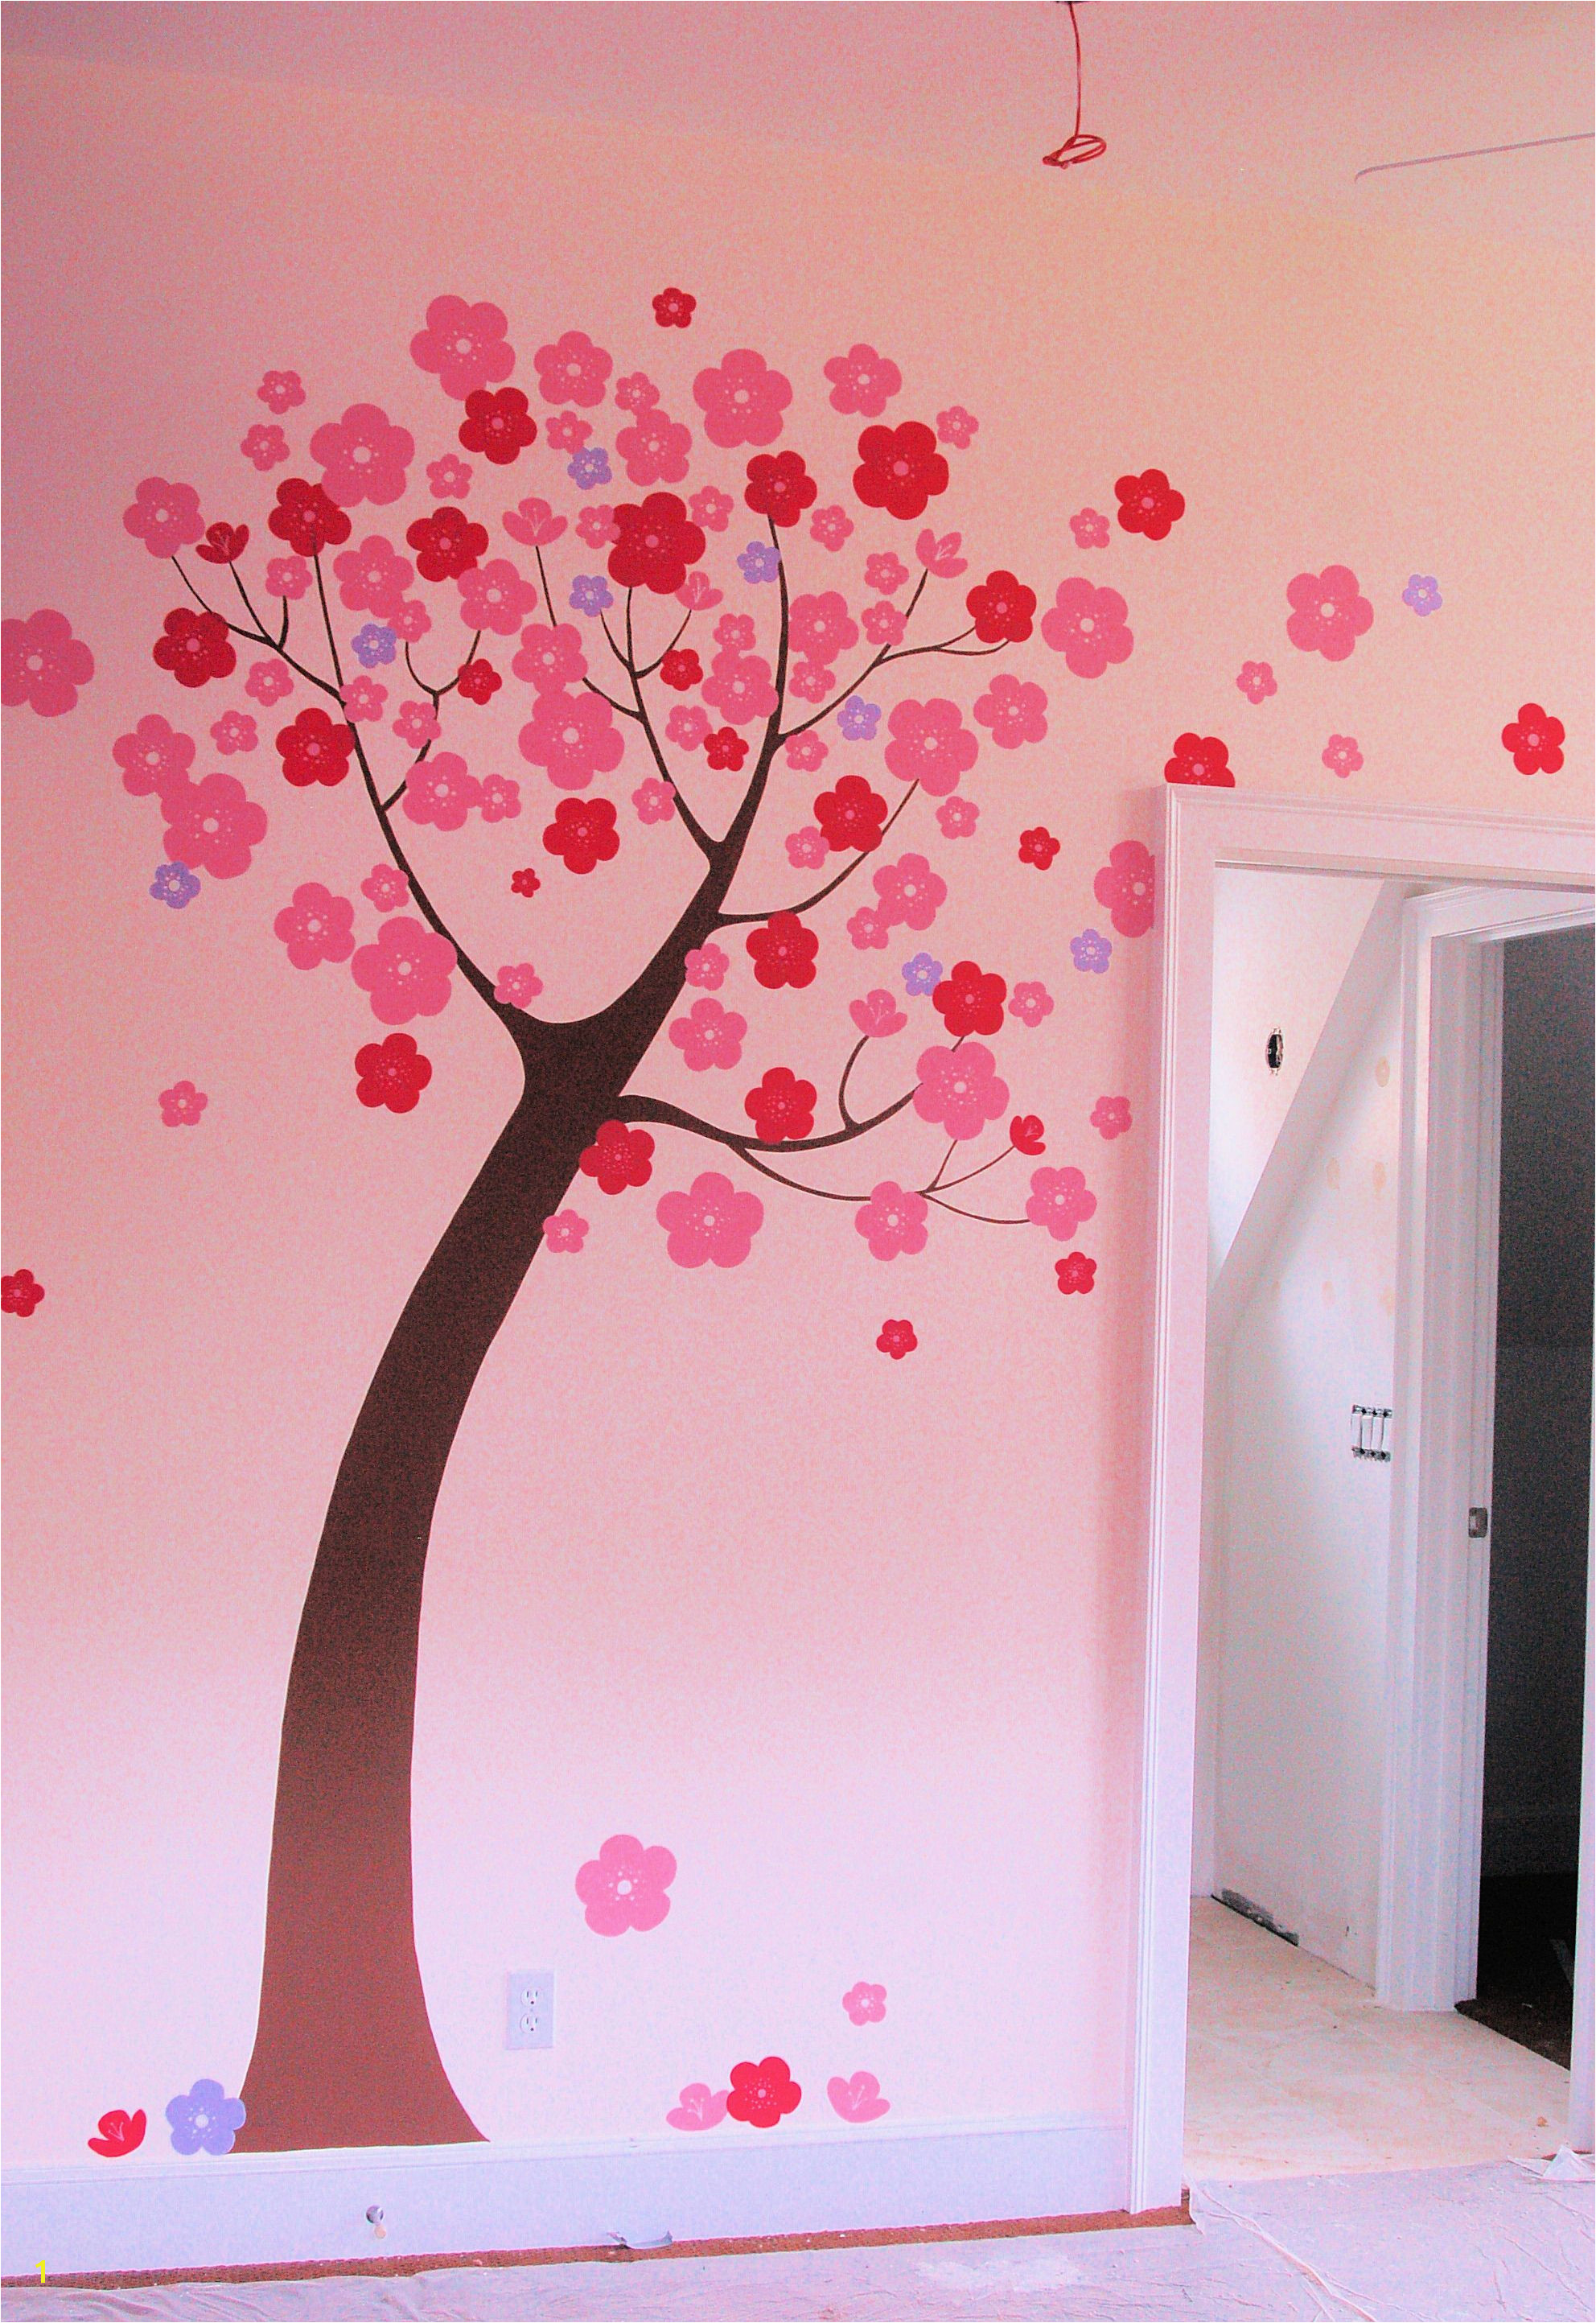 Hand Painted Stylized Tree Mural in Children s Room by Renee MacMurray love wall murals